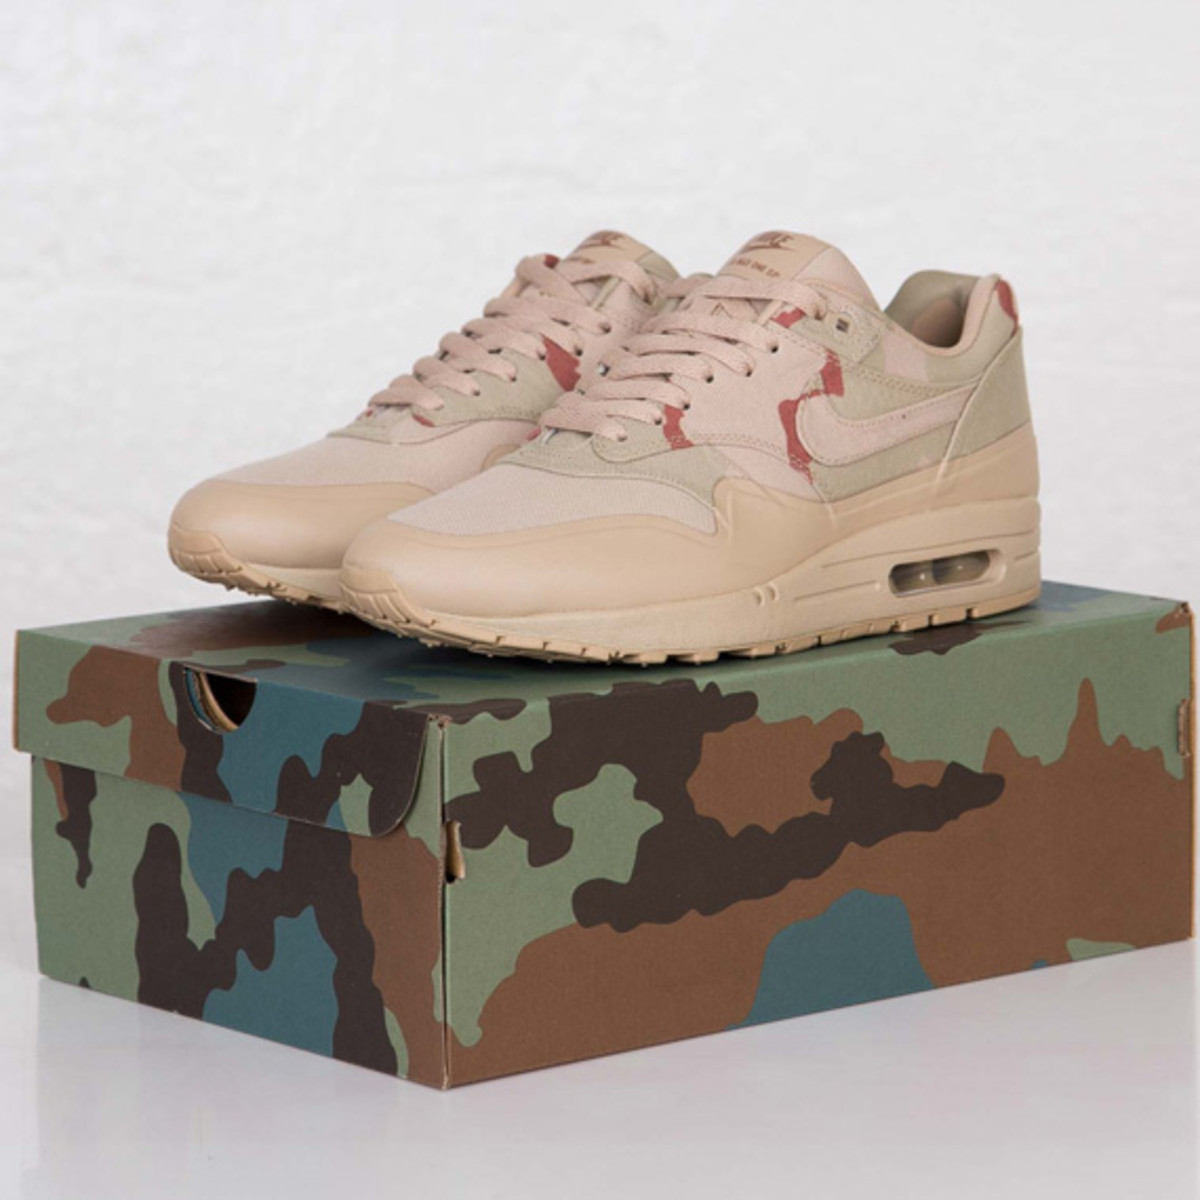 """b7e8f3758de9b Since we are on the subject of camouflage, Stockholm's SneakerNStuff  recently announced that it will launch the Nike Air Max 1 SP """"Desert Camo  USA"""" starting ..."""